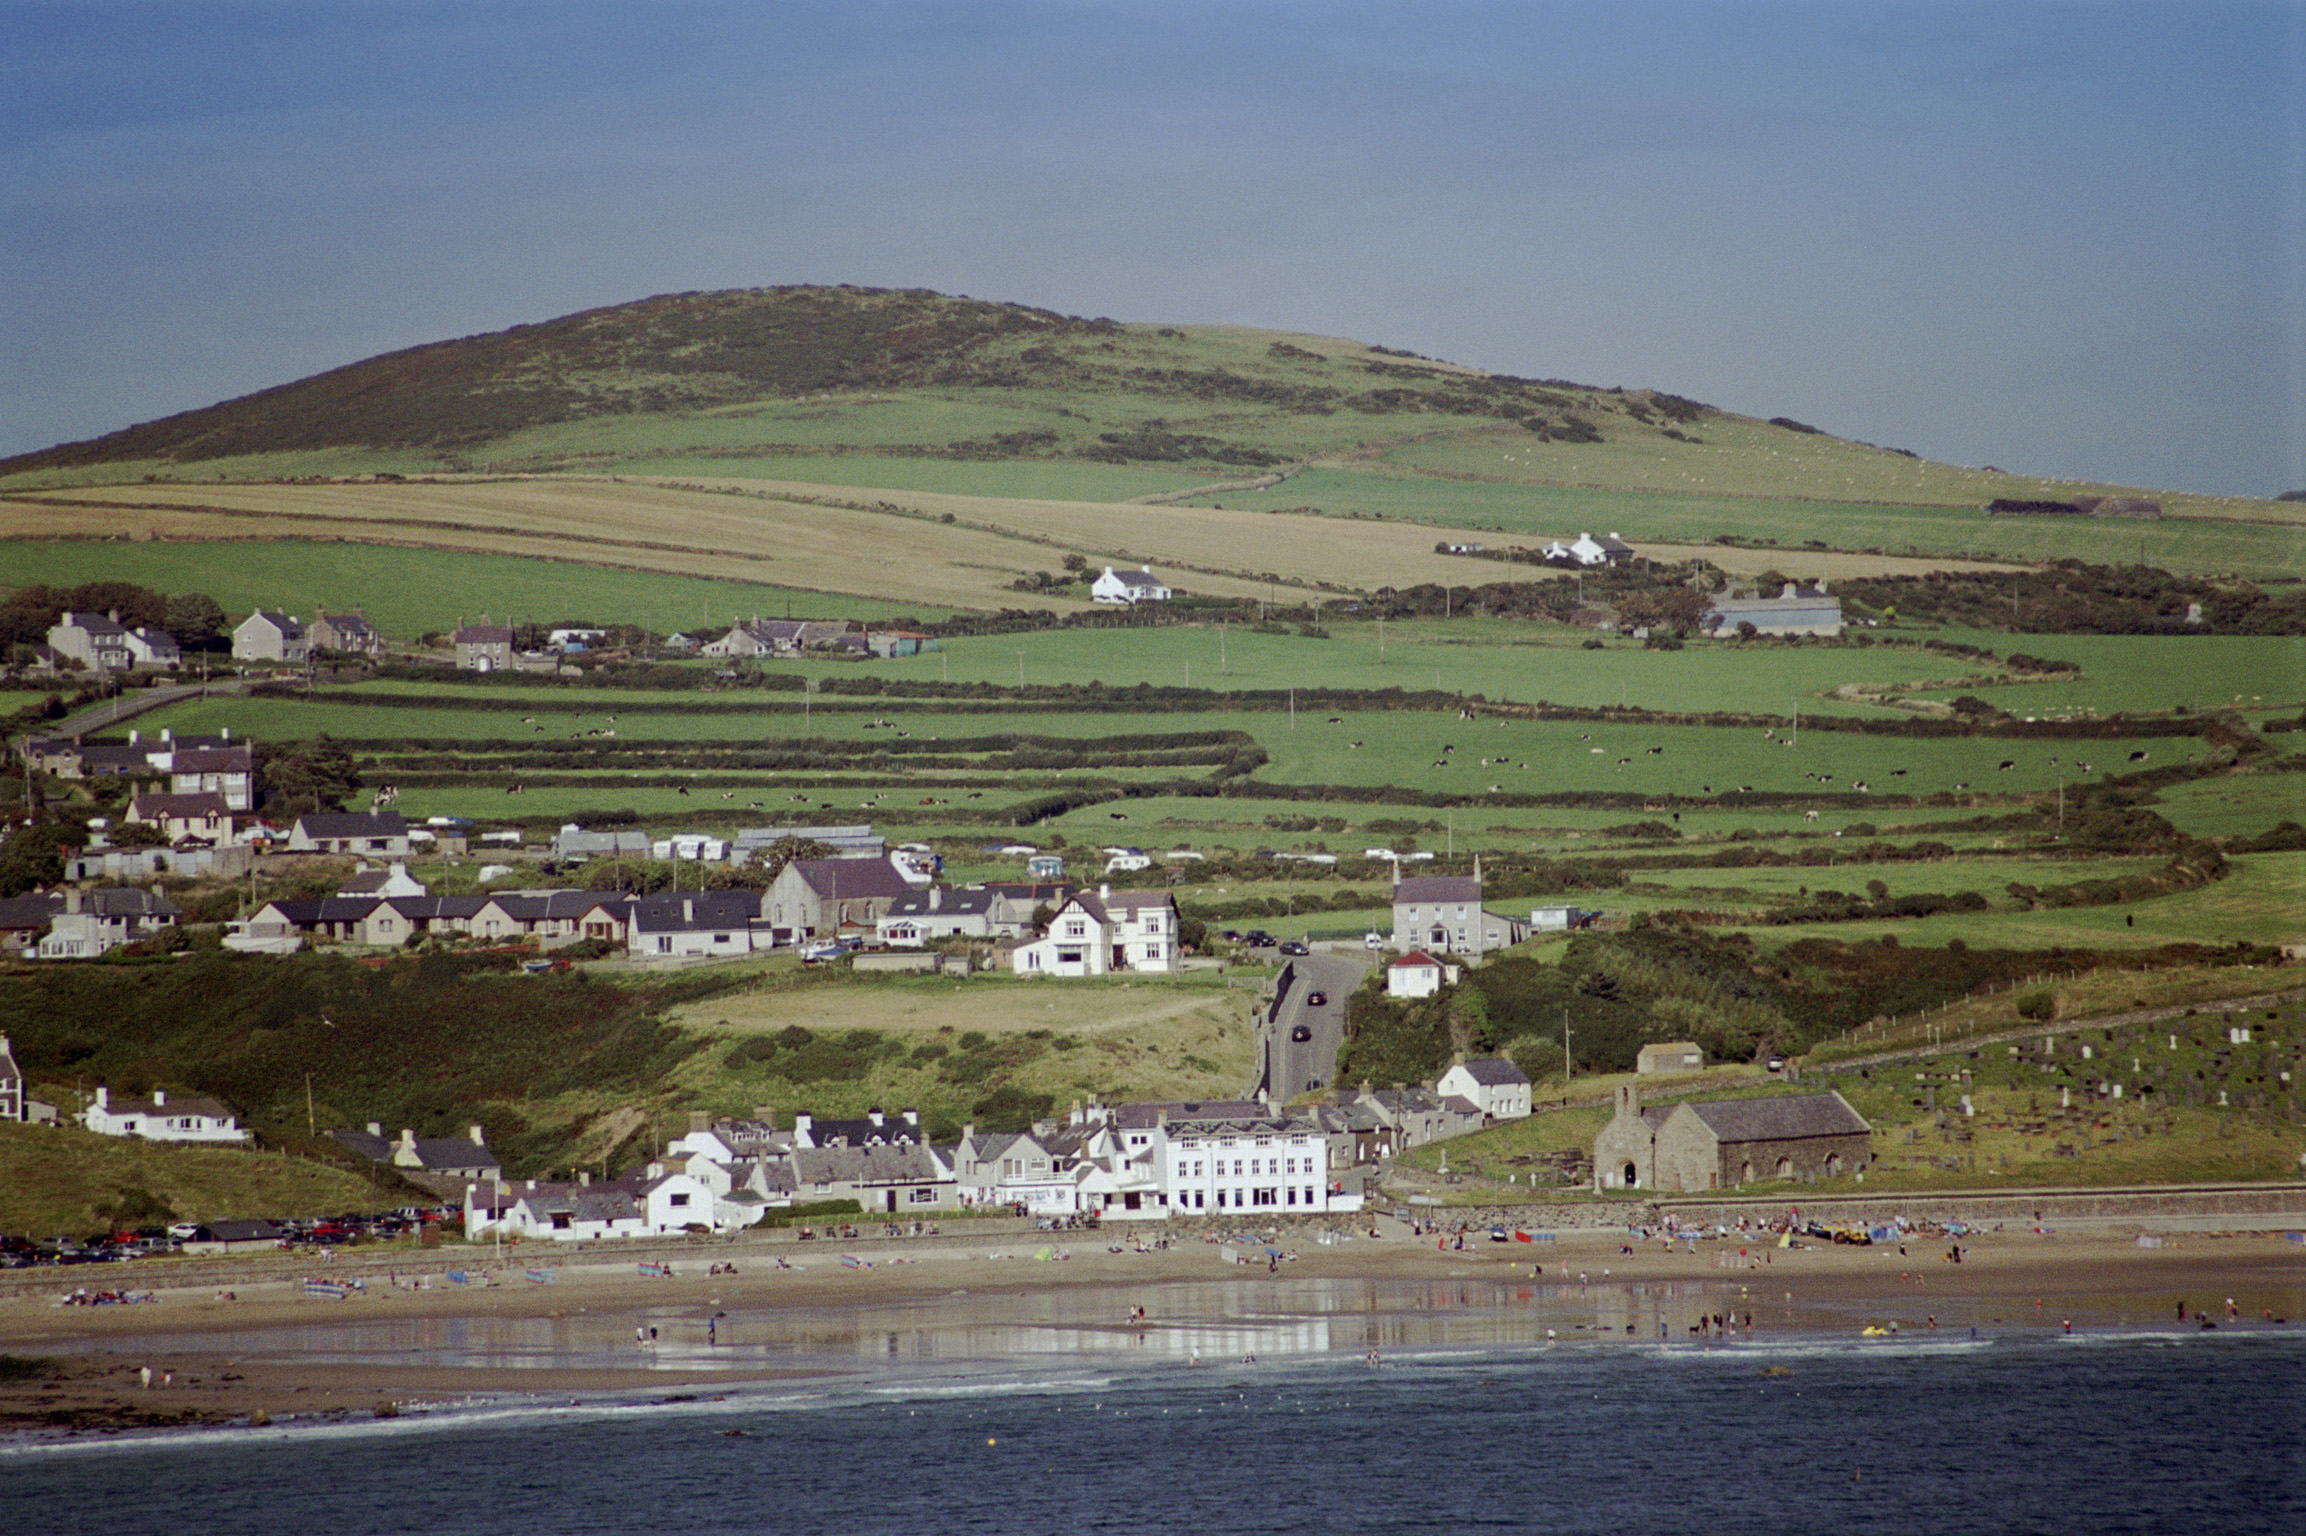 Picturesque view of Aberdaron